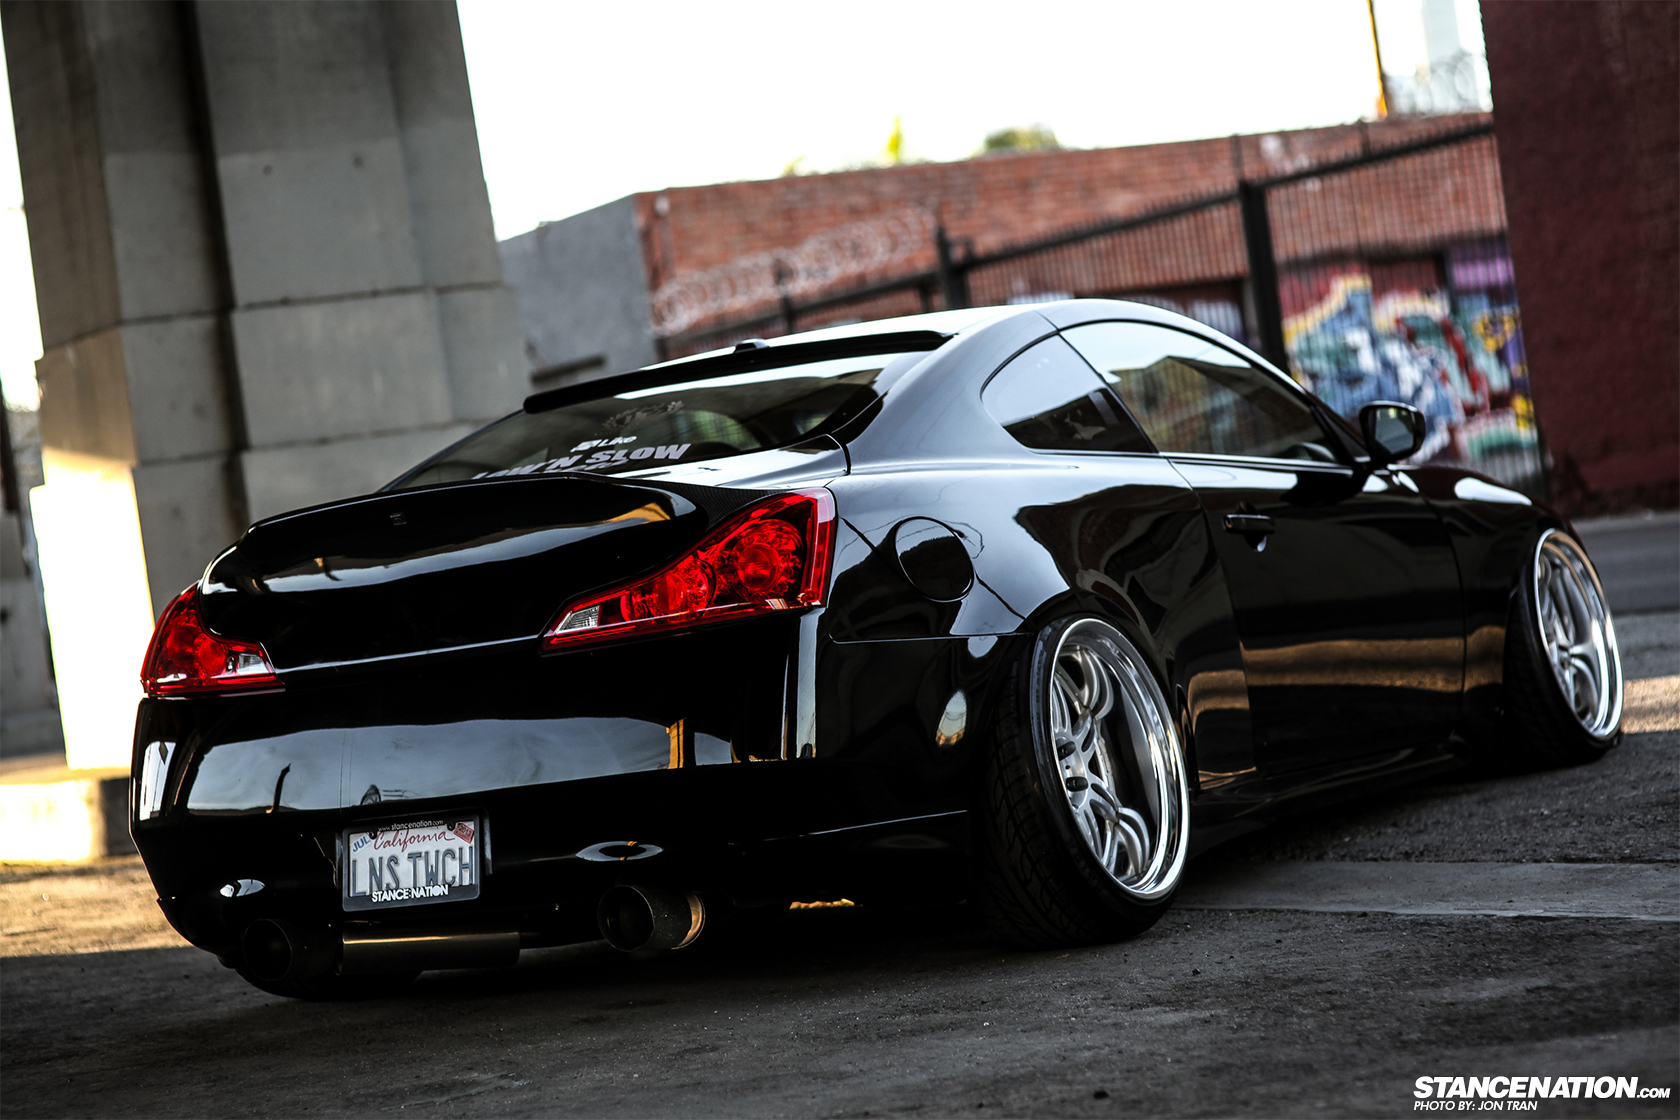 The Low N Slow Infiniti G37 Coupe Stancenation Form